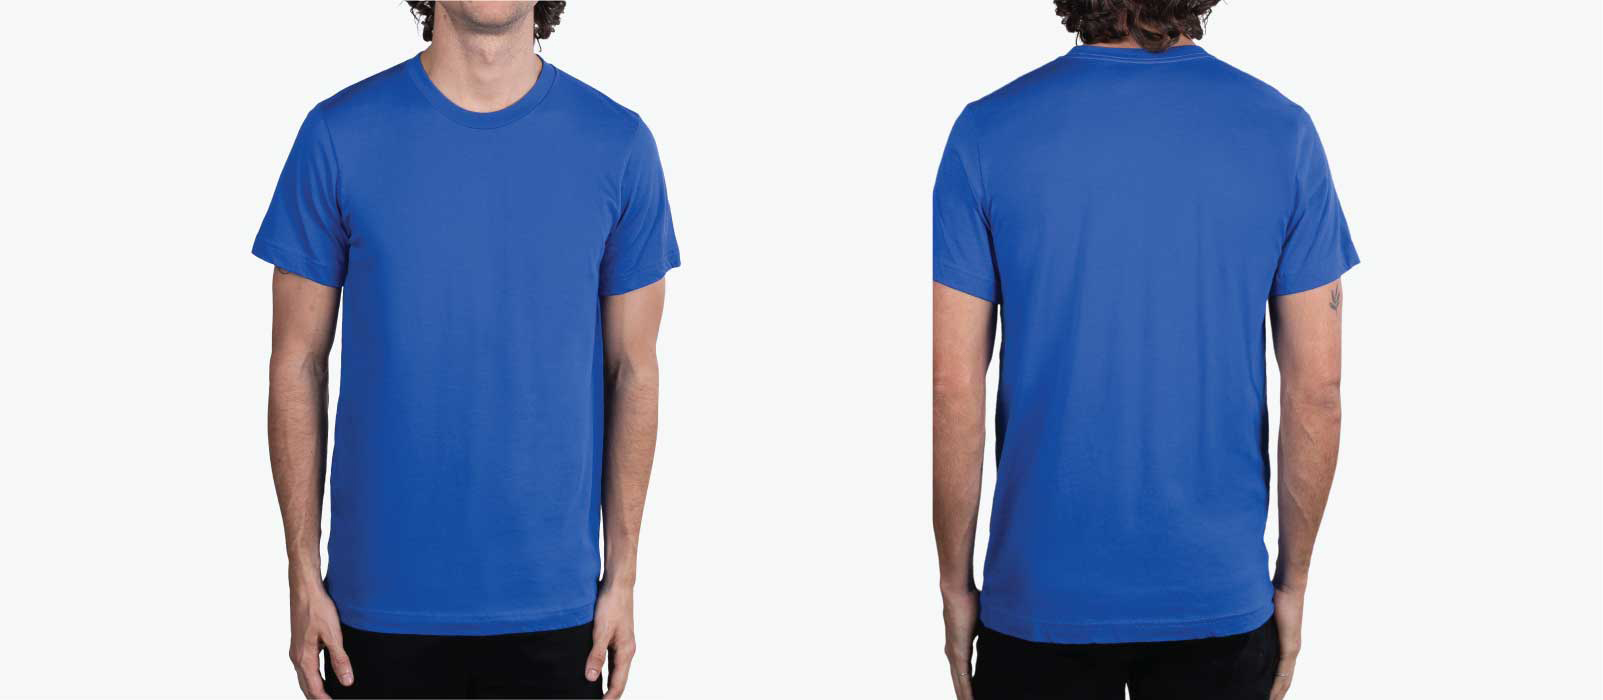 front and back of man wearing royal blue shirt